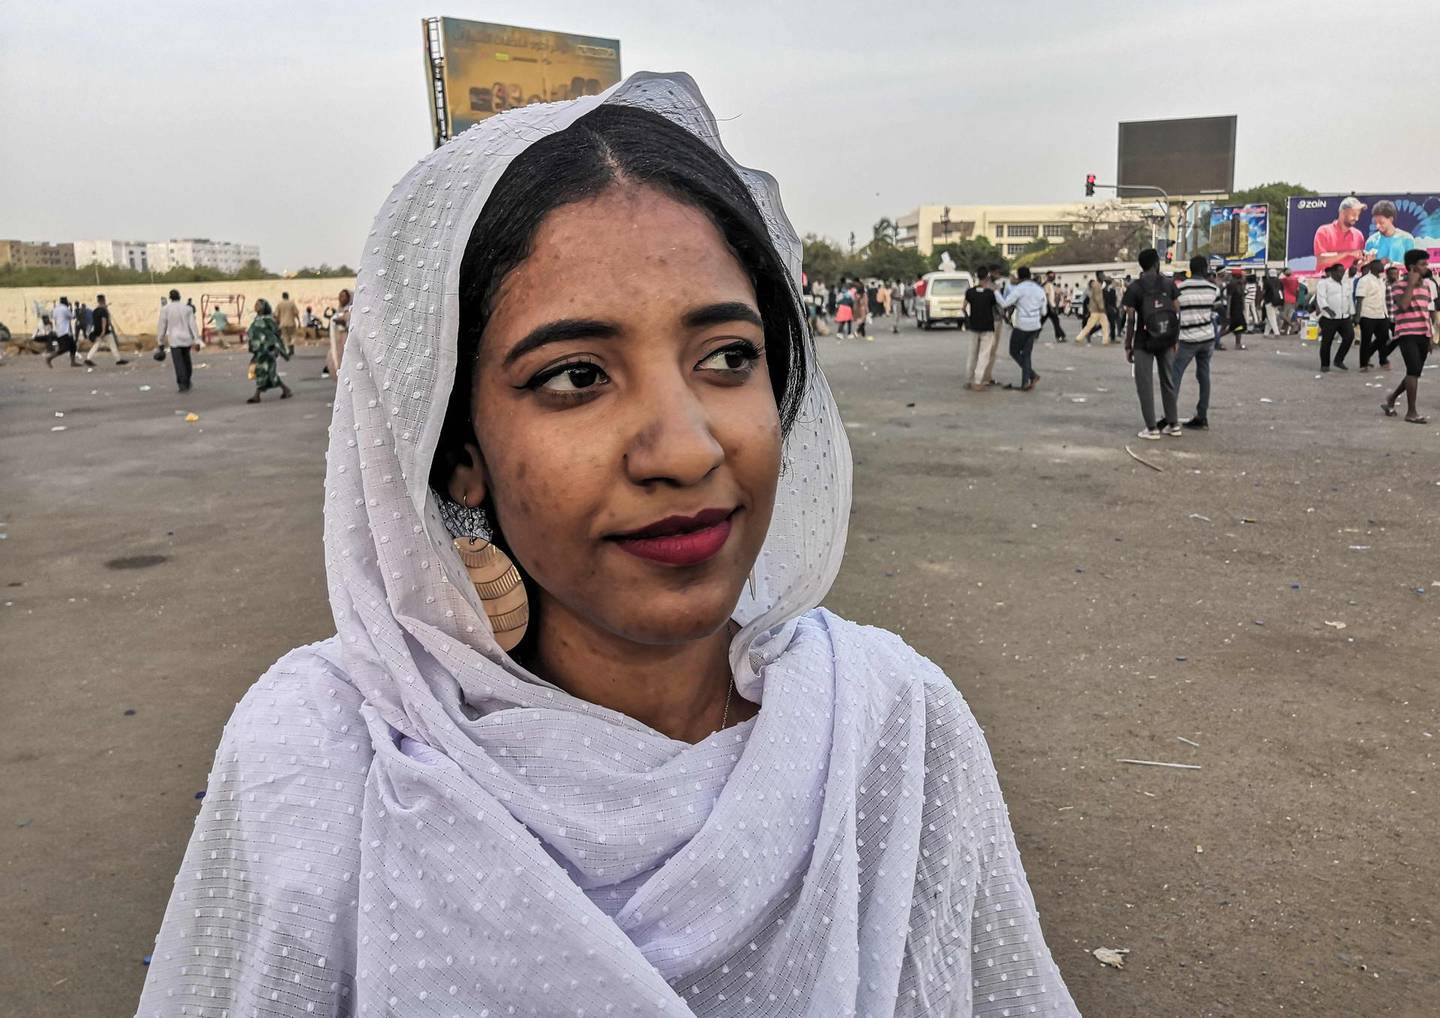 """Alaa Salah, a Sudanese woman propelled to internet fame earlier this week after clips went viral of her leading powerful protest chants against President Omar al-Bashir, attends a demonstration in front of the military headquarters in the capital Khartoum on April 10, 2019. In the clips and photos, the elegant Salah stands atop a car wearing a long white headscarf and skirt as she sings and works the crowd, her golden full-moon earings reflecting light from the fading sunset and a sea of camera phones surrounding her. Dubbed online as """"Kandaka"""", or Nubian queen, she has become a symbol of the protests which she says have traditionally had a female backbone in Sudan.  / AFP / -"""